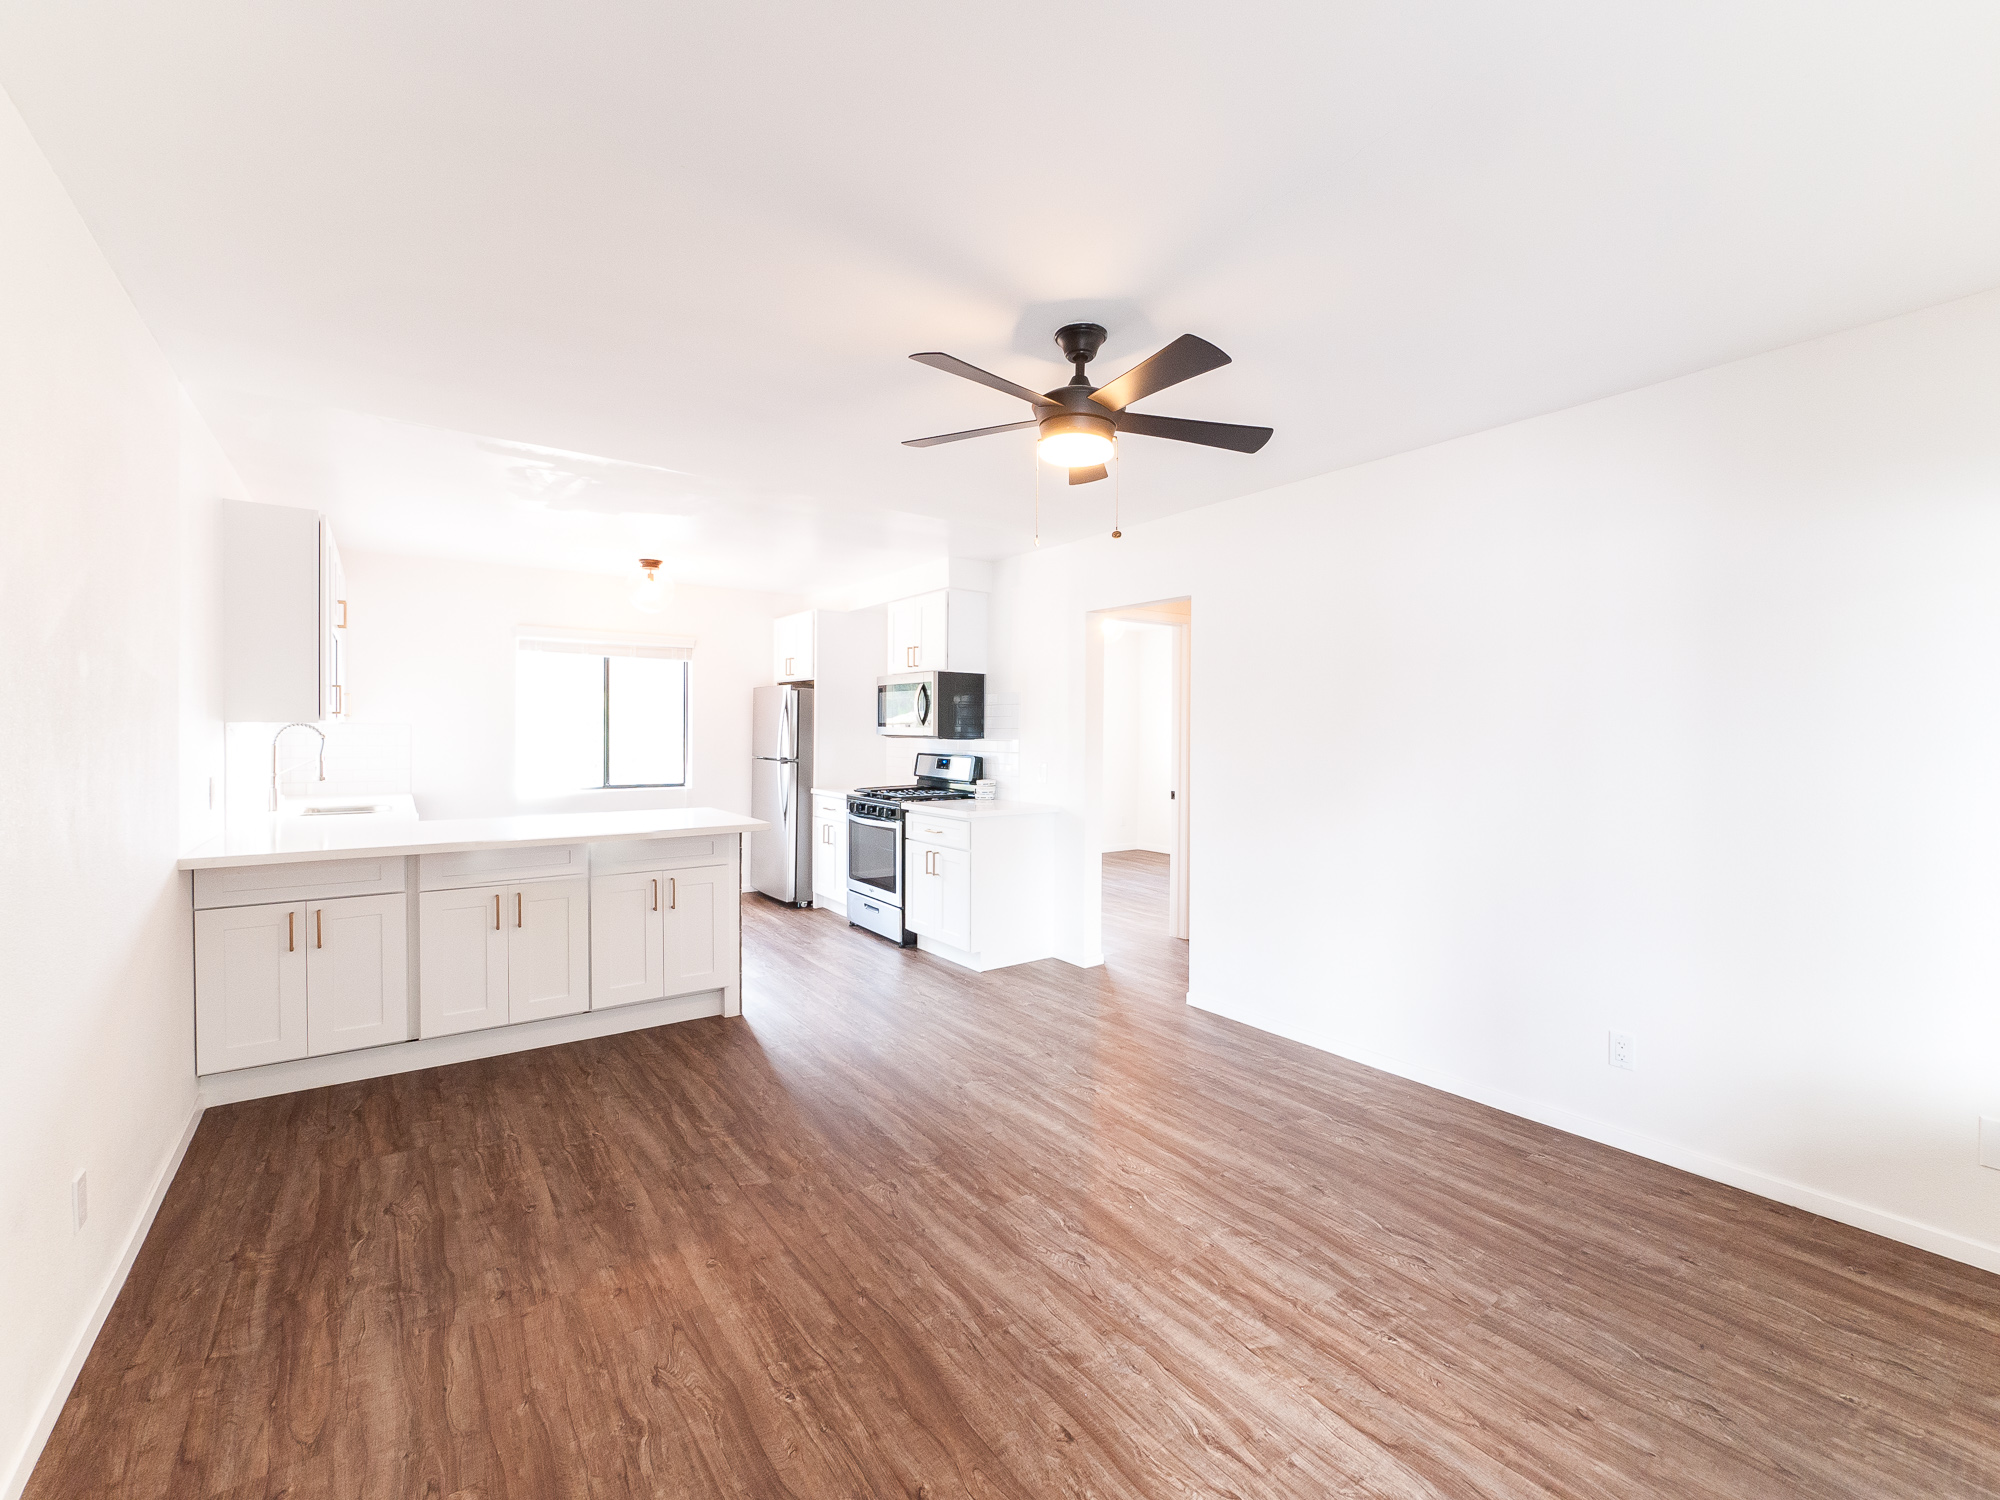 SOPHISTICATED 2 BED IN PRIME HIGHLAND PARK | W/D IN UNIT | AC INCLUDED | 1 PARKING SPACE